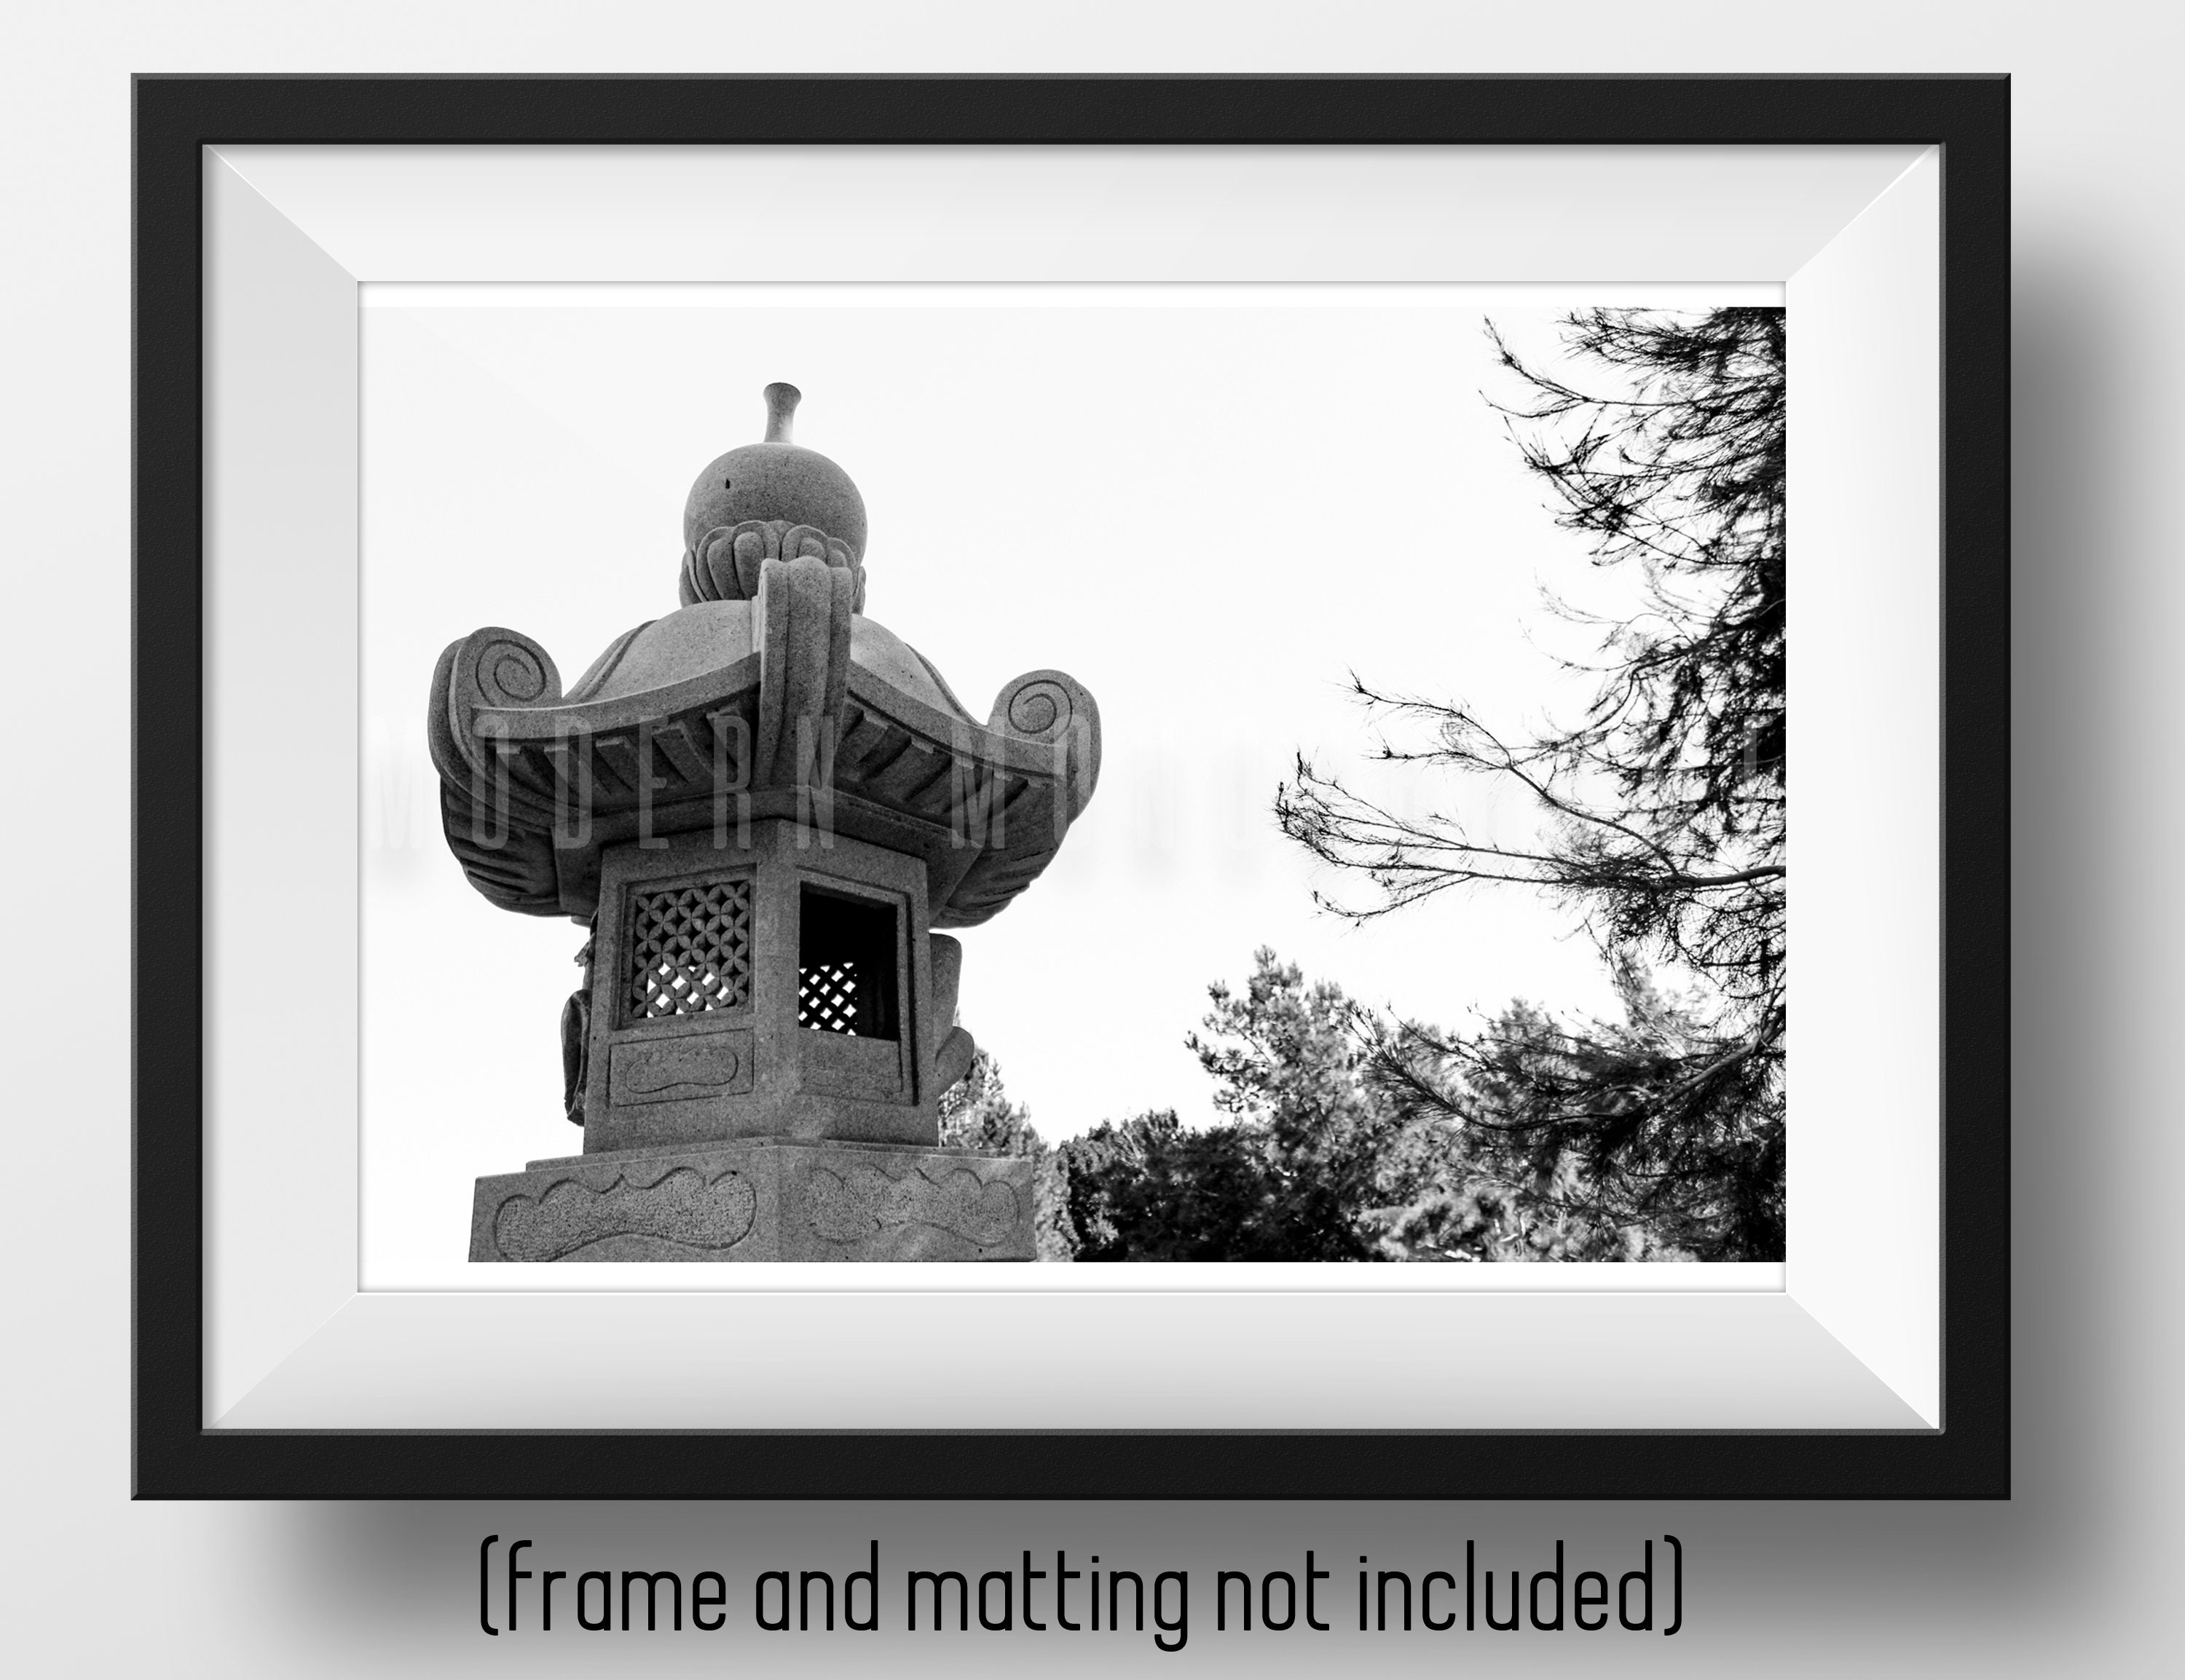 Fine art photo print japanese garden sculpture gallery quality archival black and white photography wall art 18x12 24x16 20x30